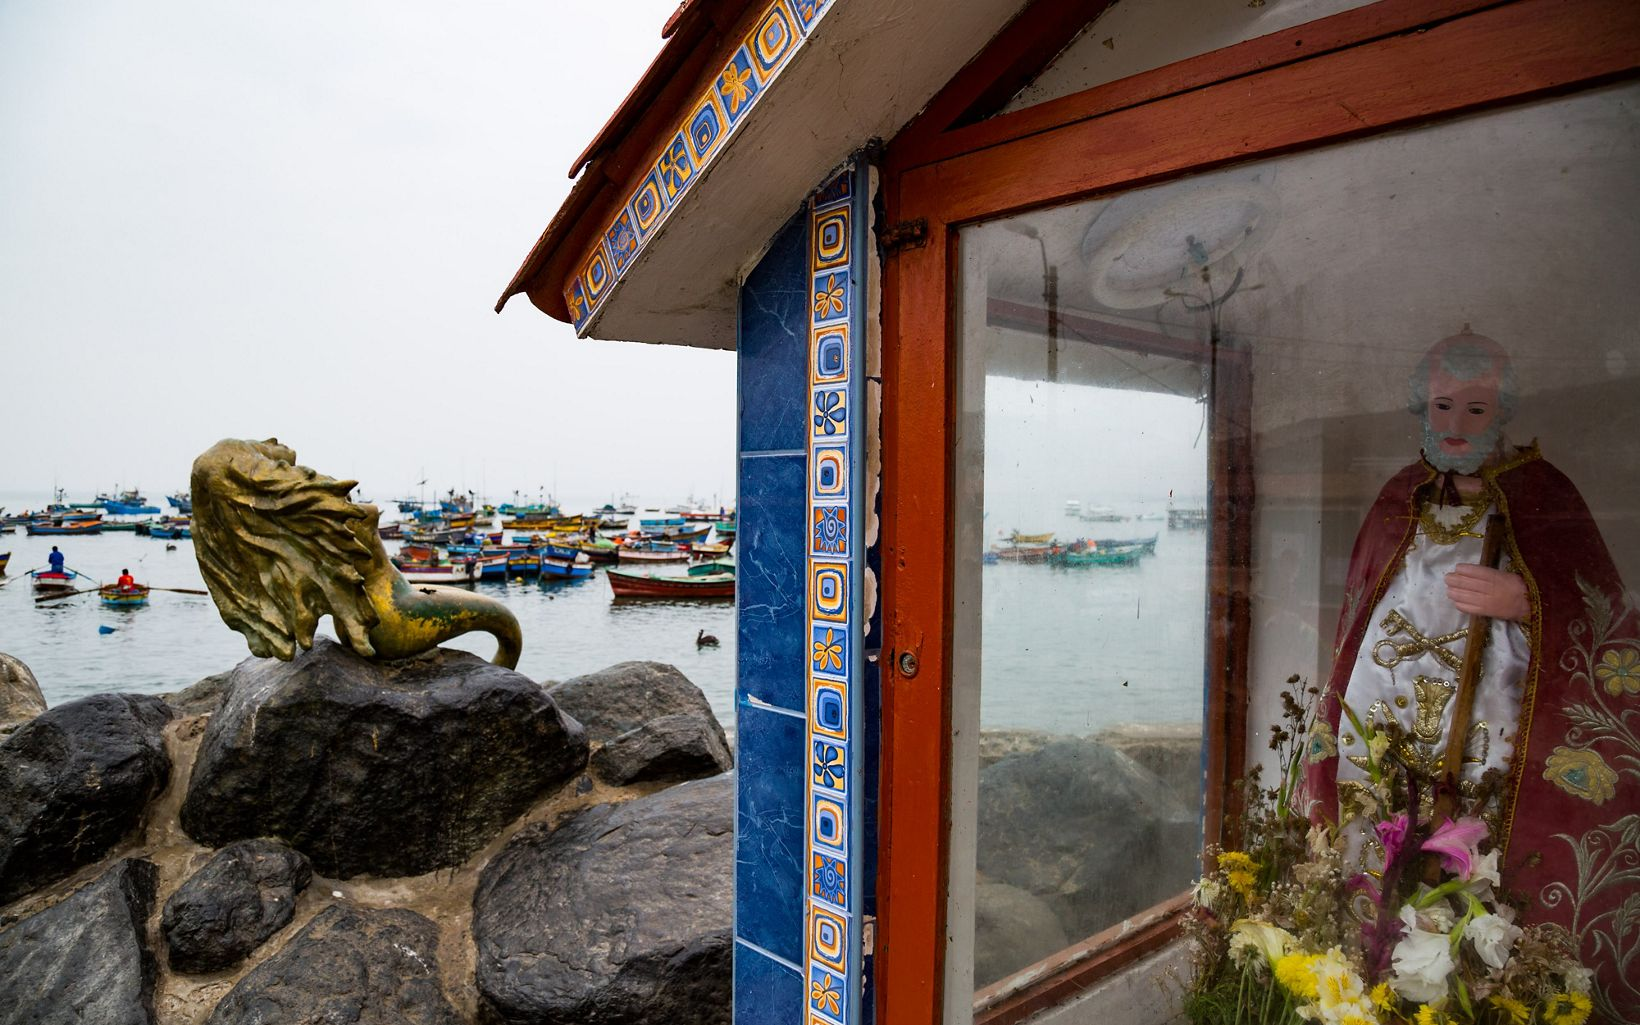 There are about 500 registered fishermen in Ancon, a small fishing town and seaside vacation destination about an hour north of Lima, Peru.